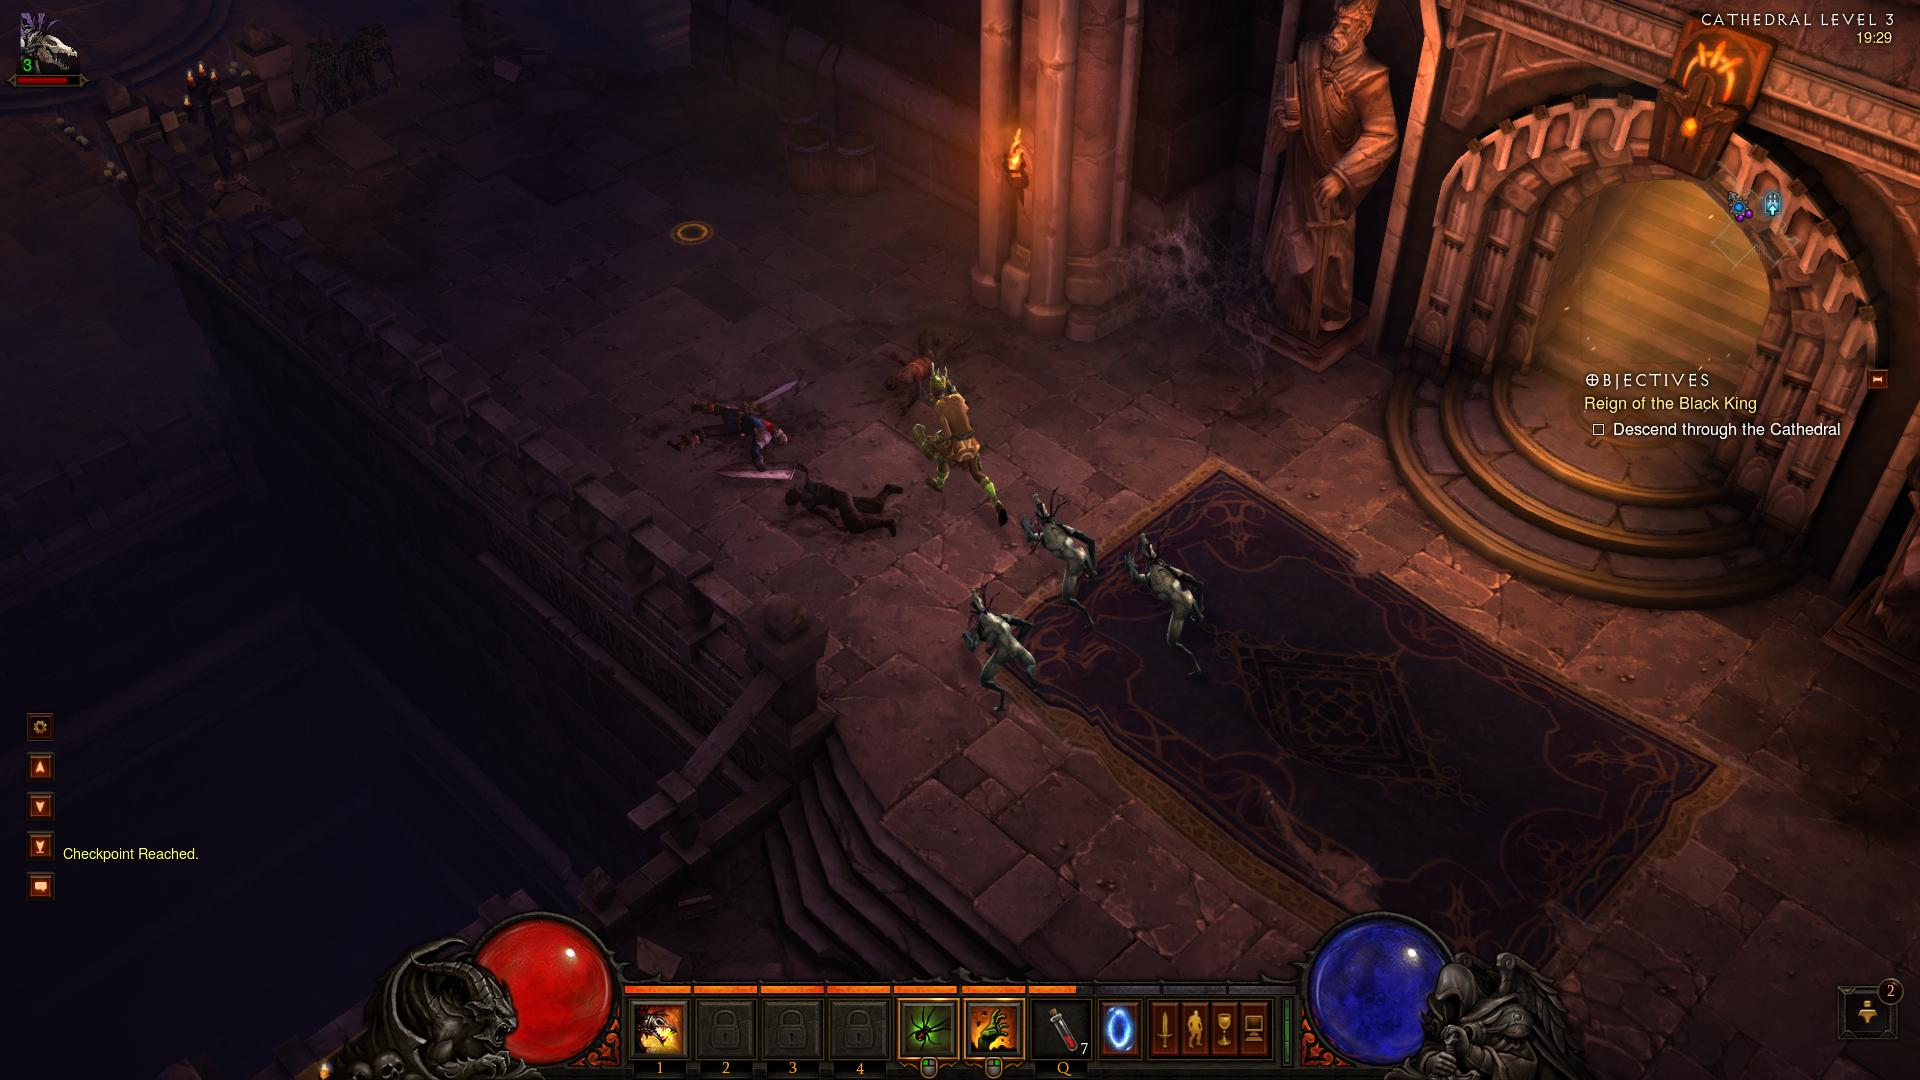 Diablo 3 Cathedral level 3 d3 screenshot